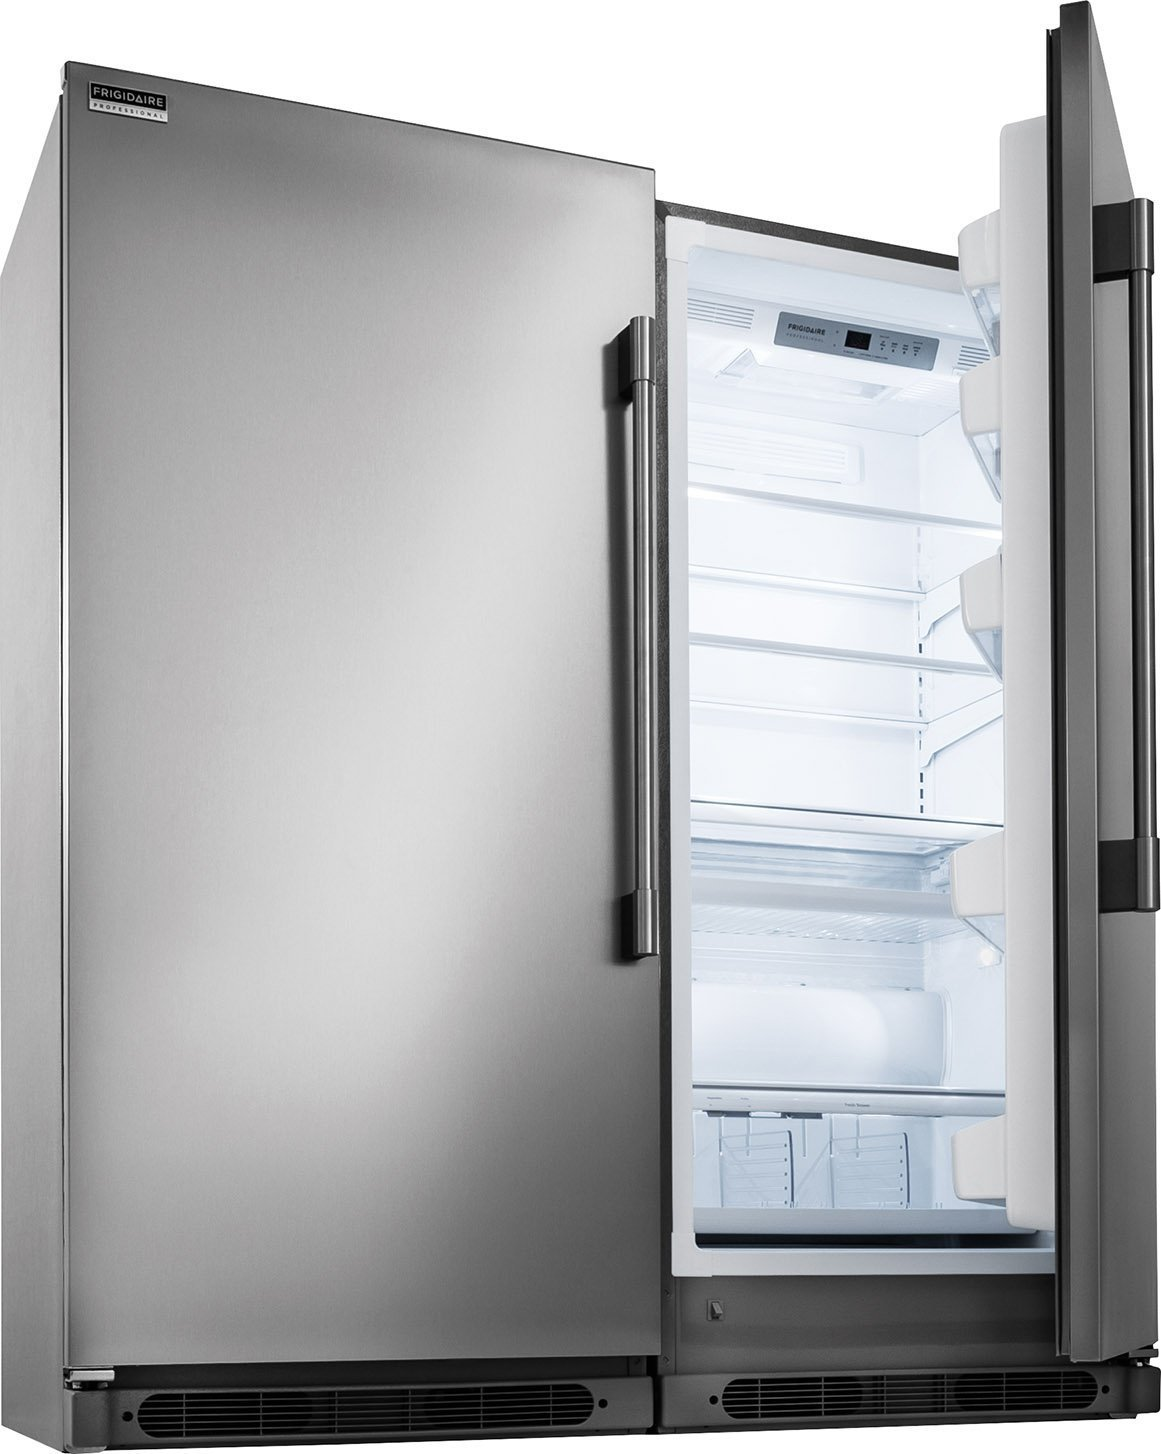 Frigidaire Professional Series Built In All Refrigerator